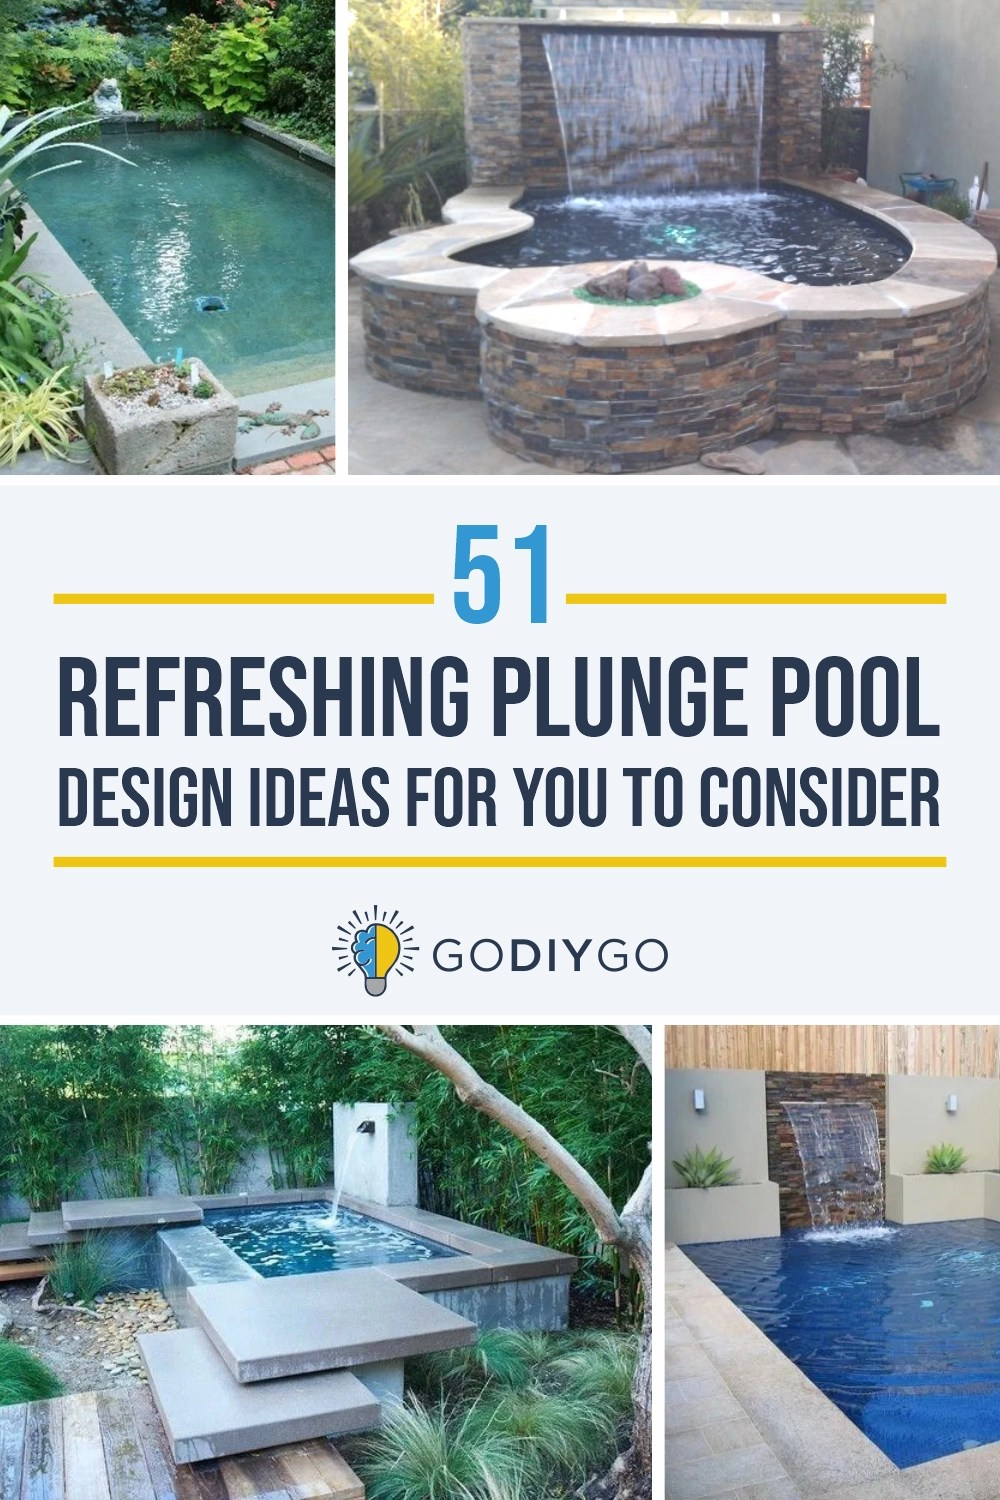 Tauchbecken Outdoor 51 Refreshing Plunge Pool Design Ideas For You To Consider ~ Godiygo.com